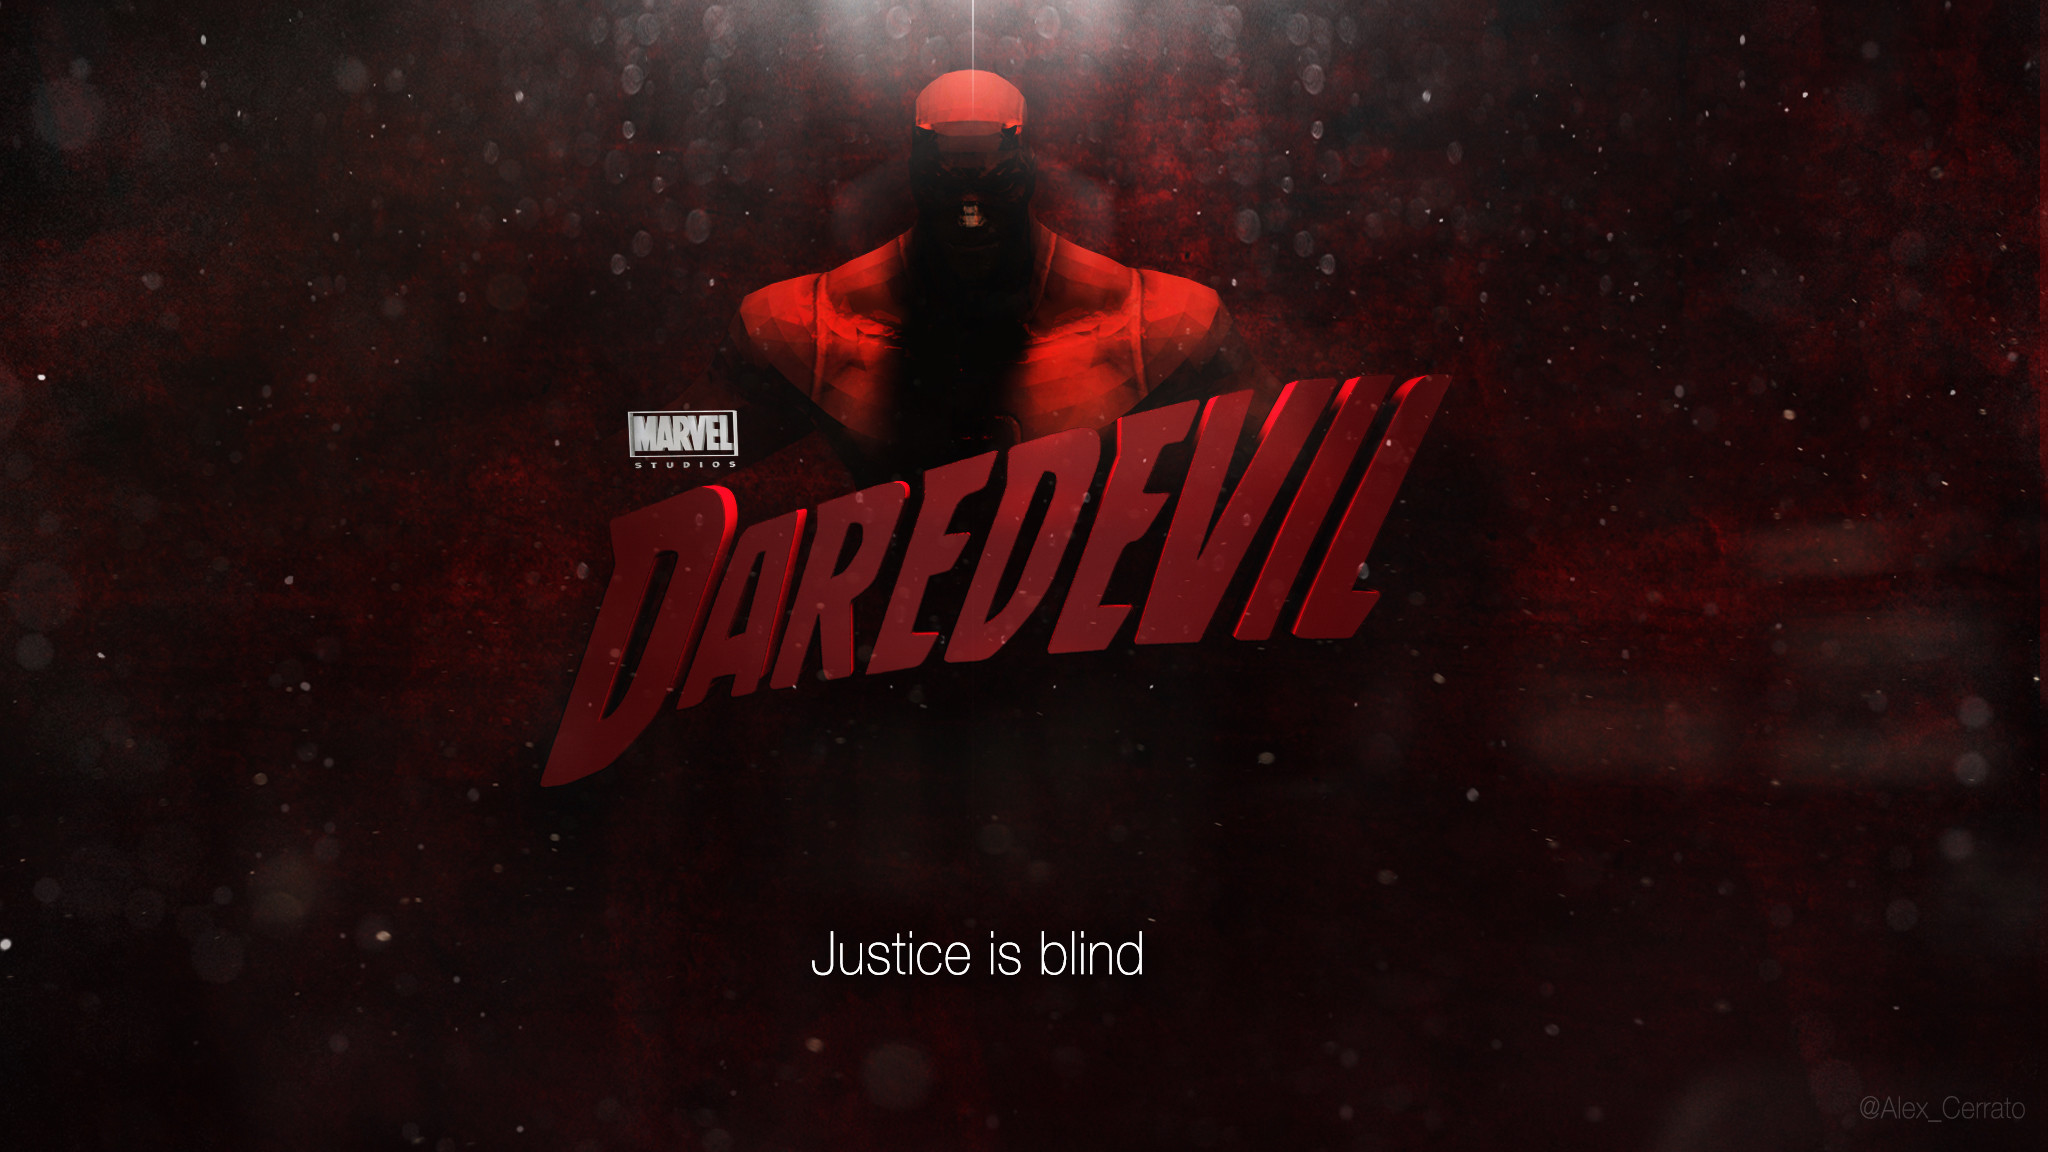 Res: 2048x1152, Daredevil Wallpaper High Quality Resolution